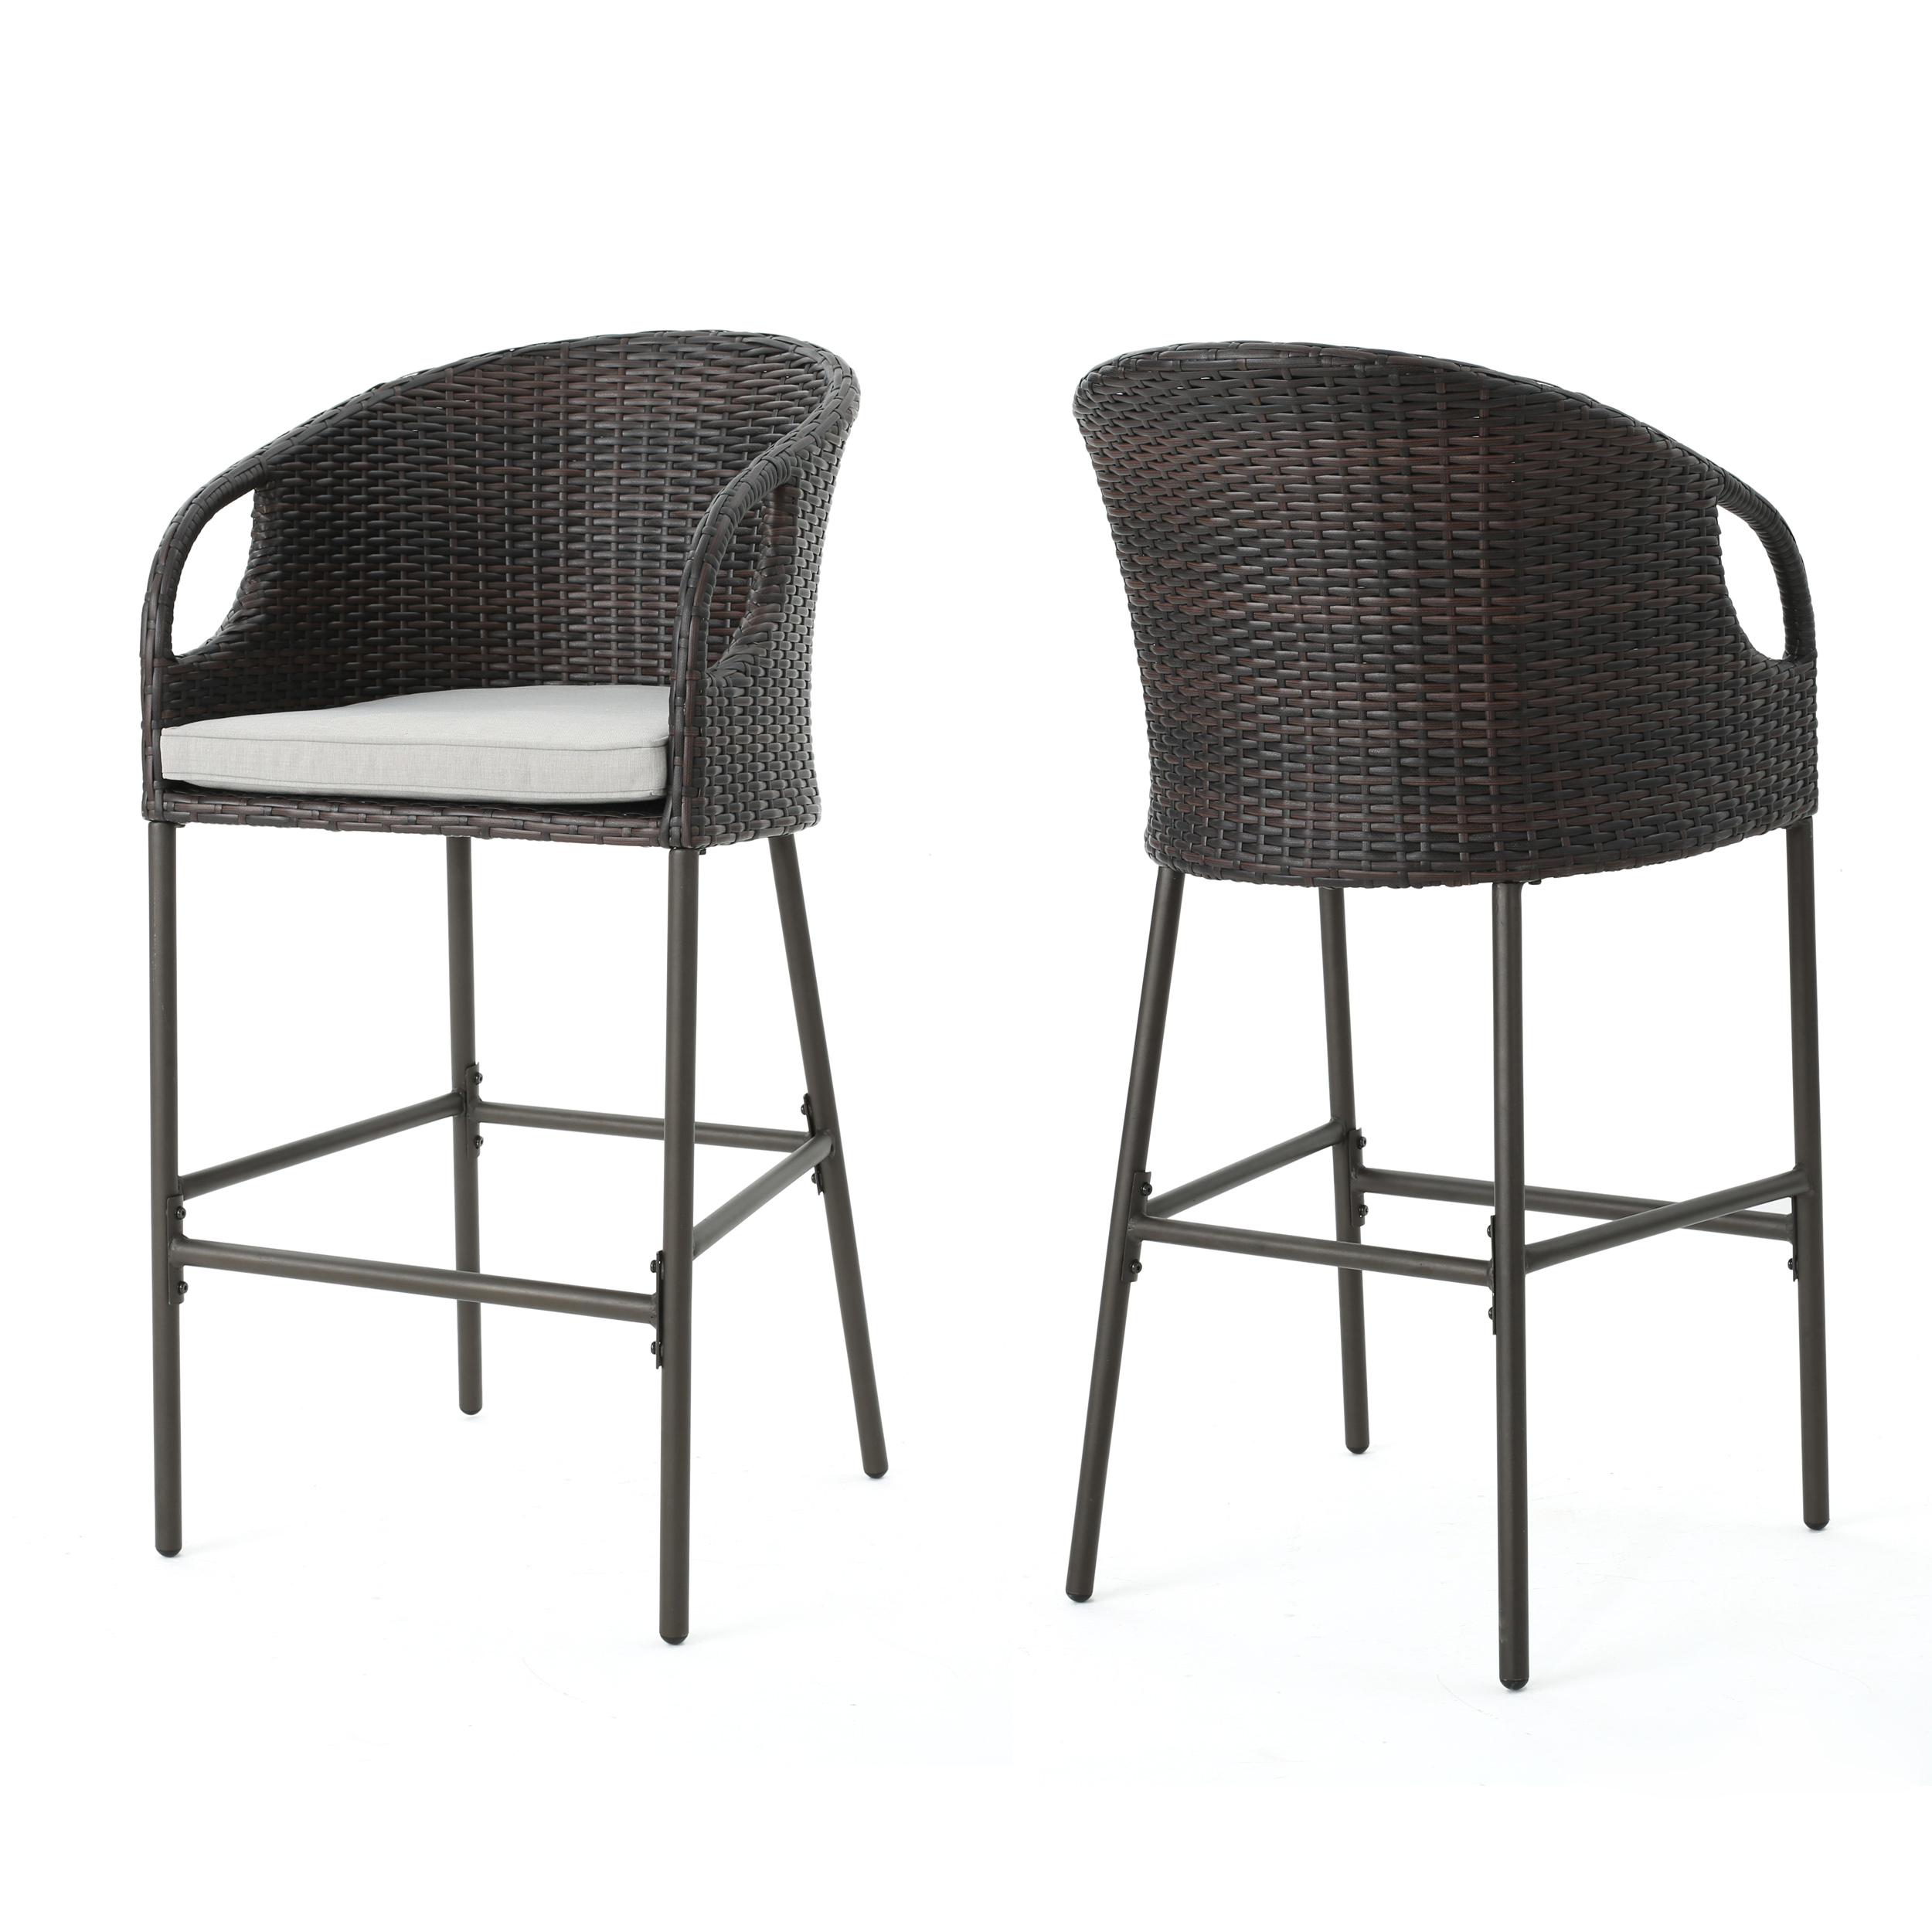 Dunlevy Outdoor Multibrown Wicker Barstools with Water Resistant Cushions, Set of 2, Light Brown